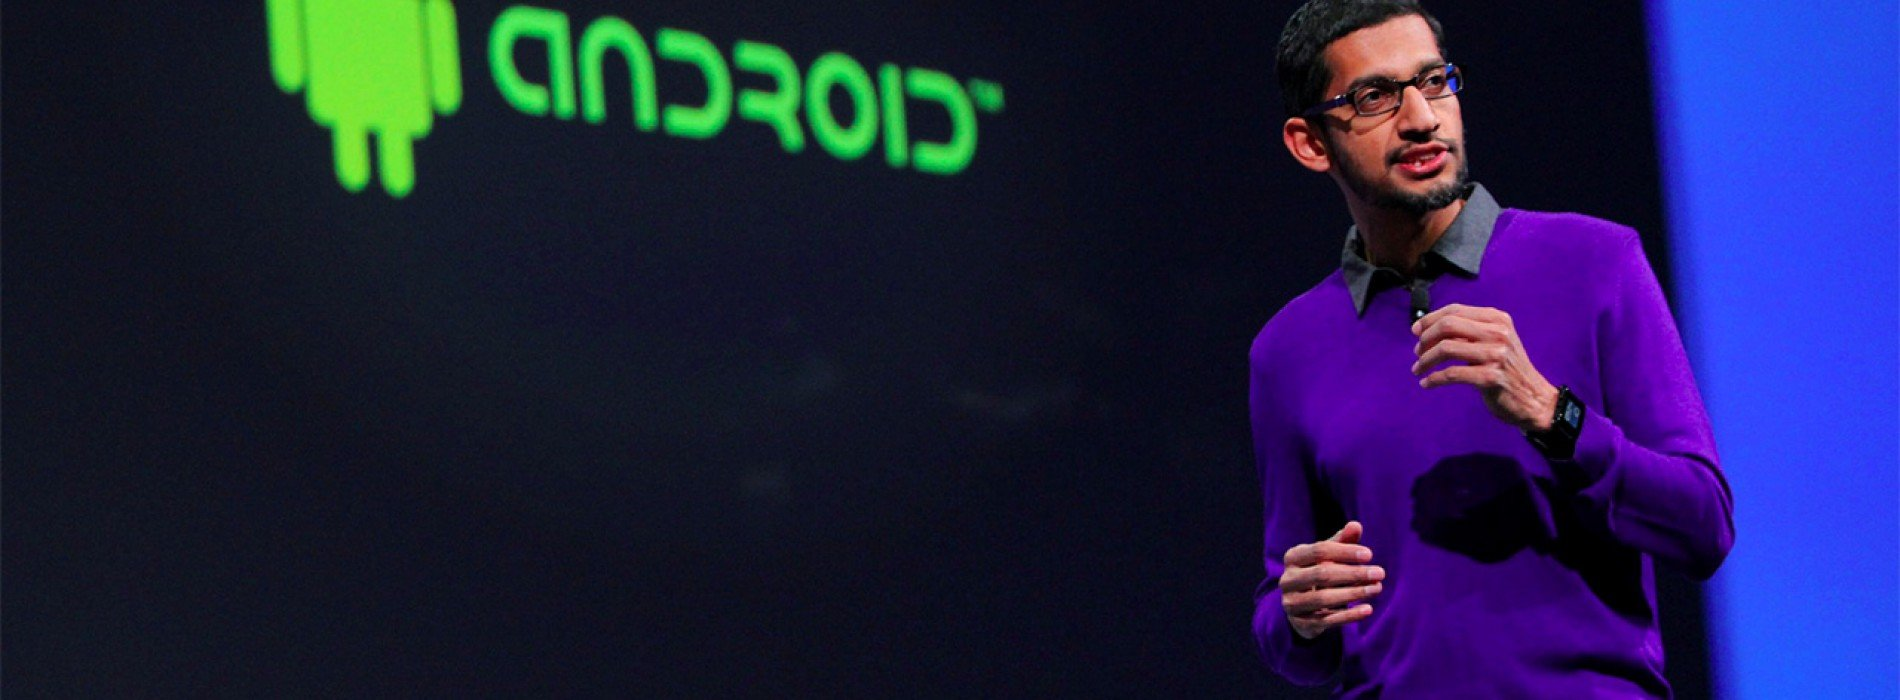 We'll see a new version of Android previewed at Google I/O, Sundar Pachai confirms